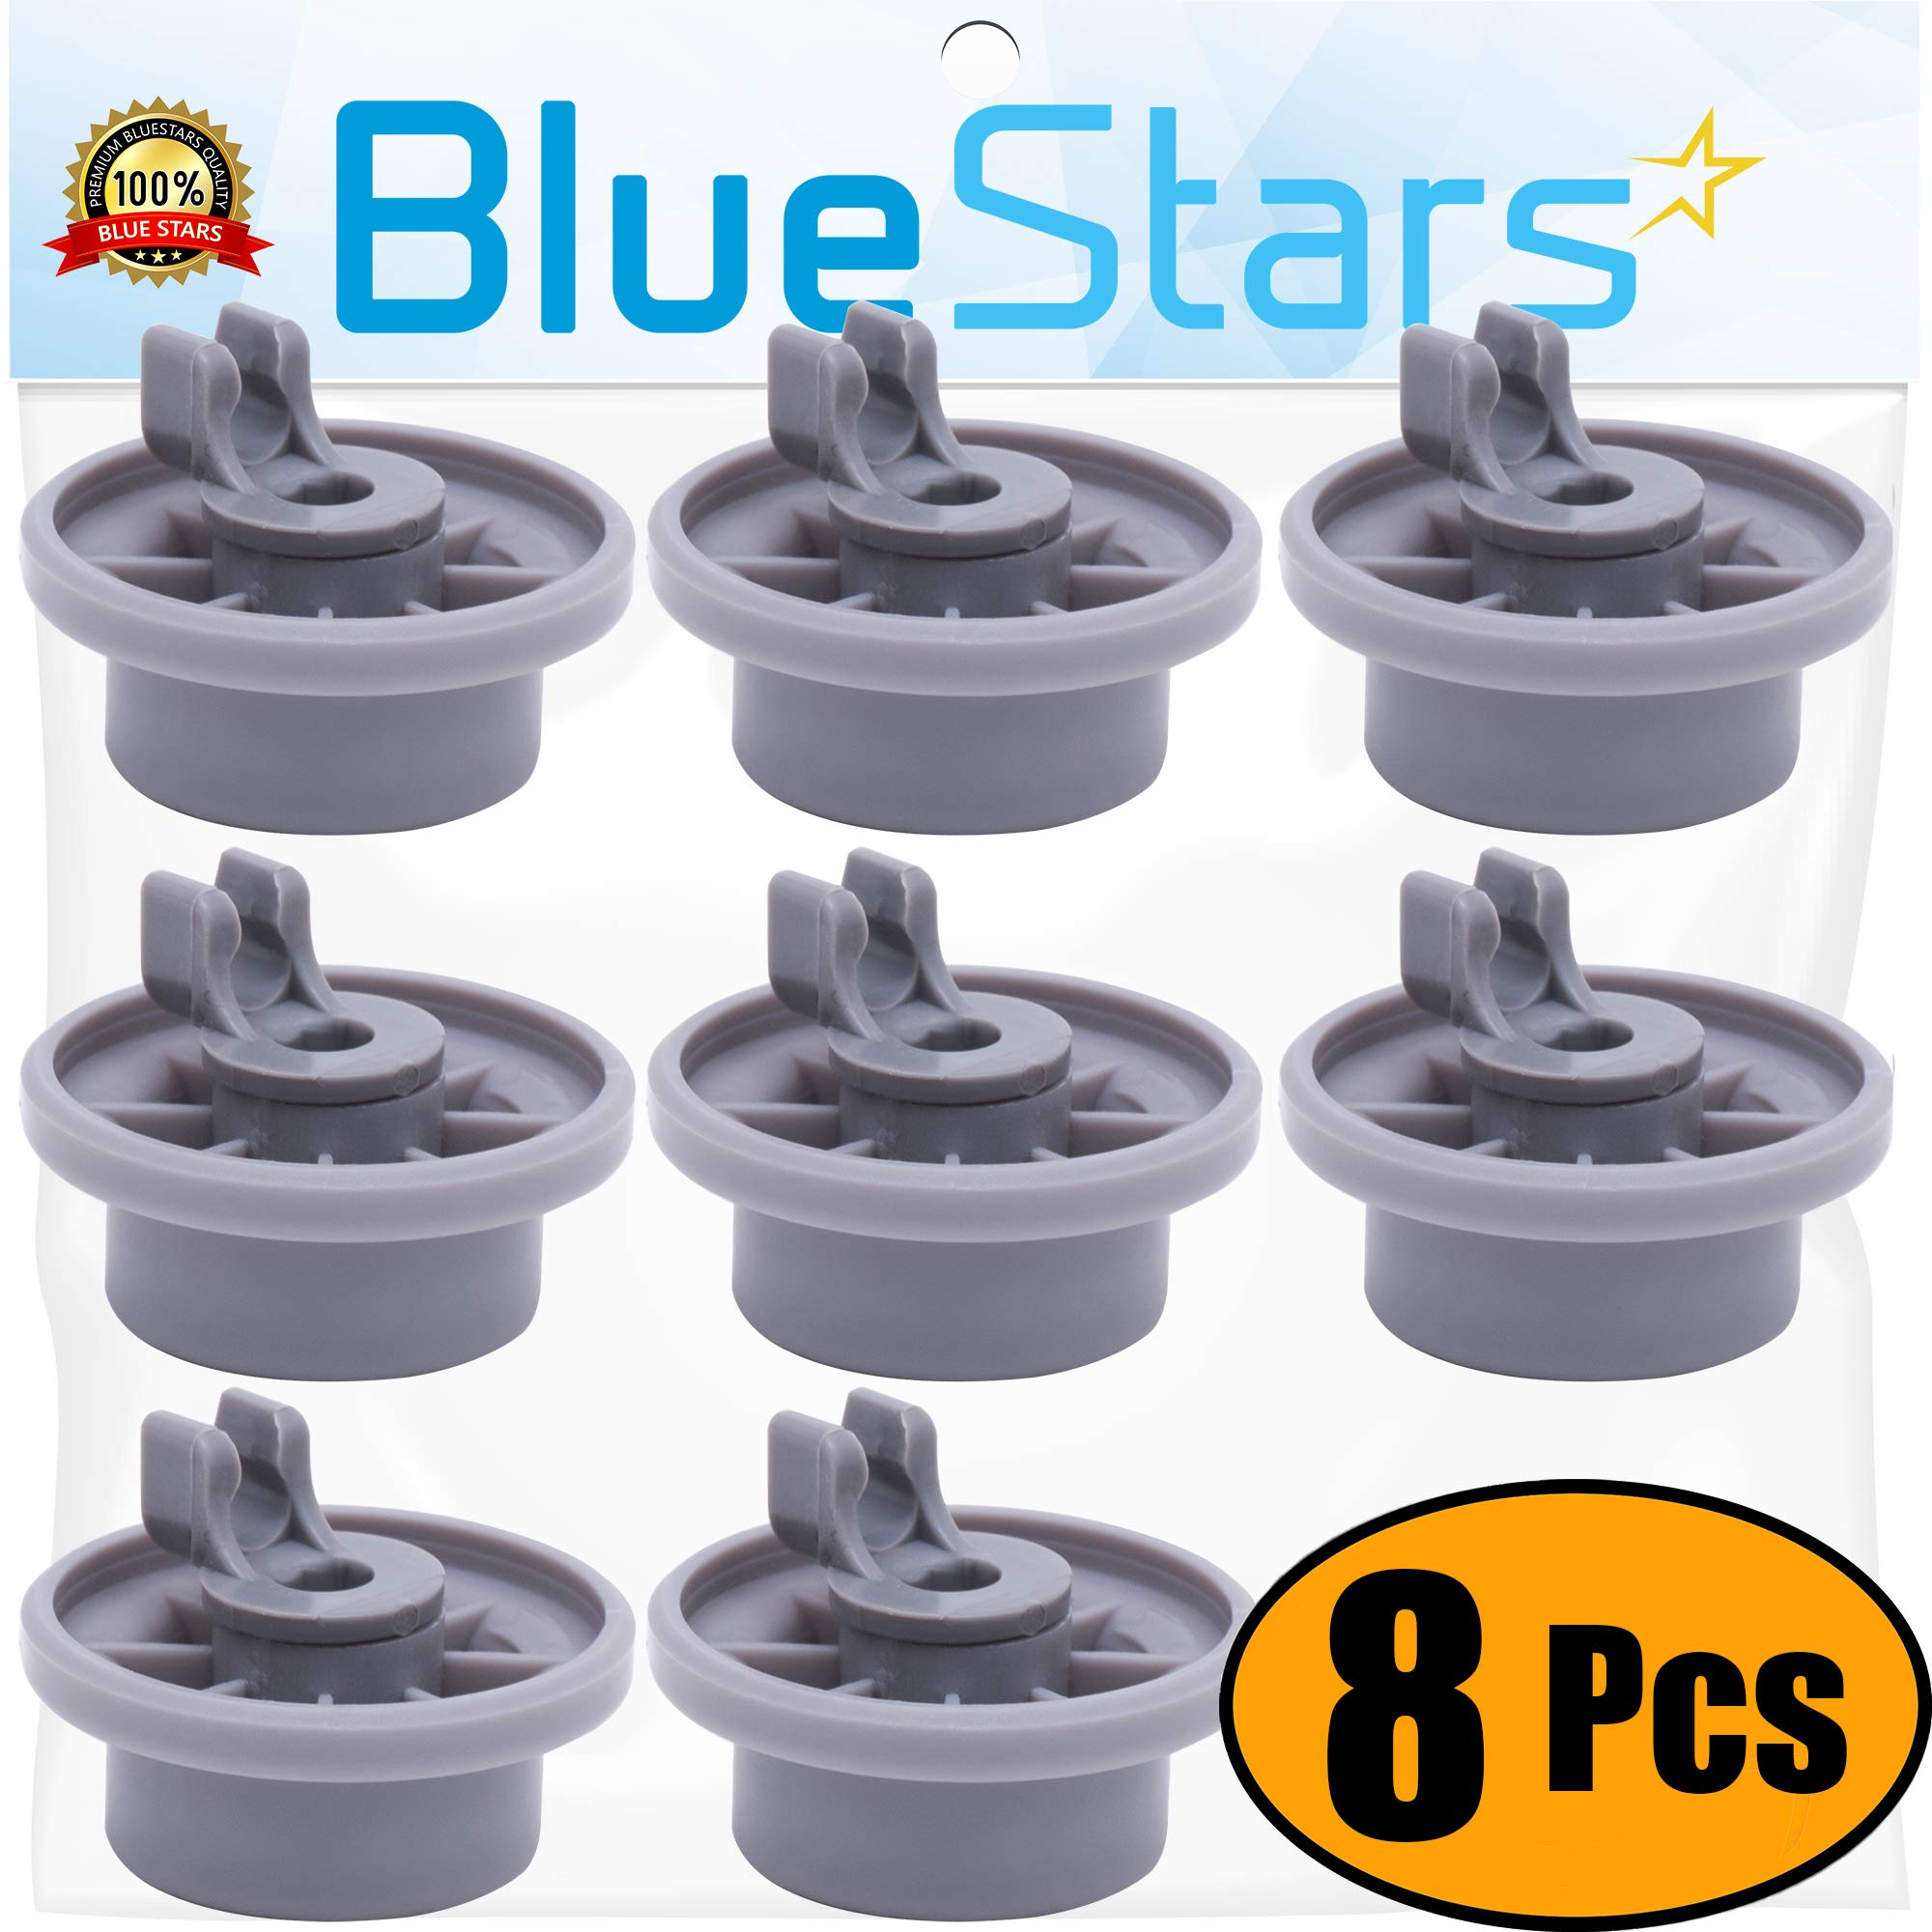 Ultra Durable 165314 Dishwasher Lower Rack Wheel replacement by Blue Stars - Exact Fit for Bosch & Kenmore Dishwasher - Replaces 00420198 420198 - PACK OF 8